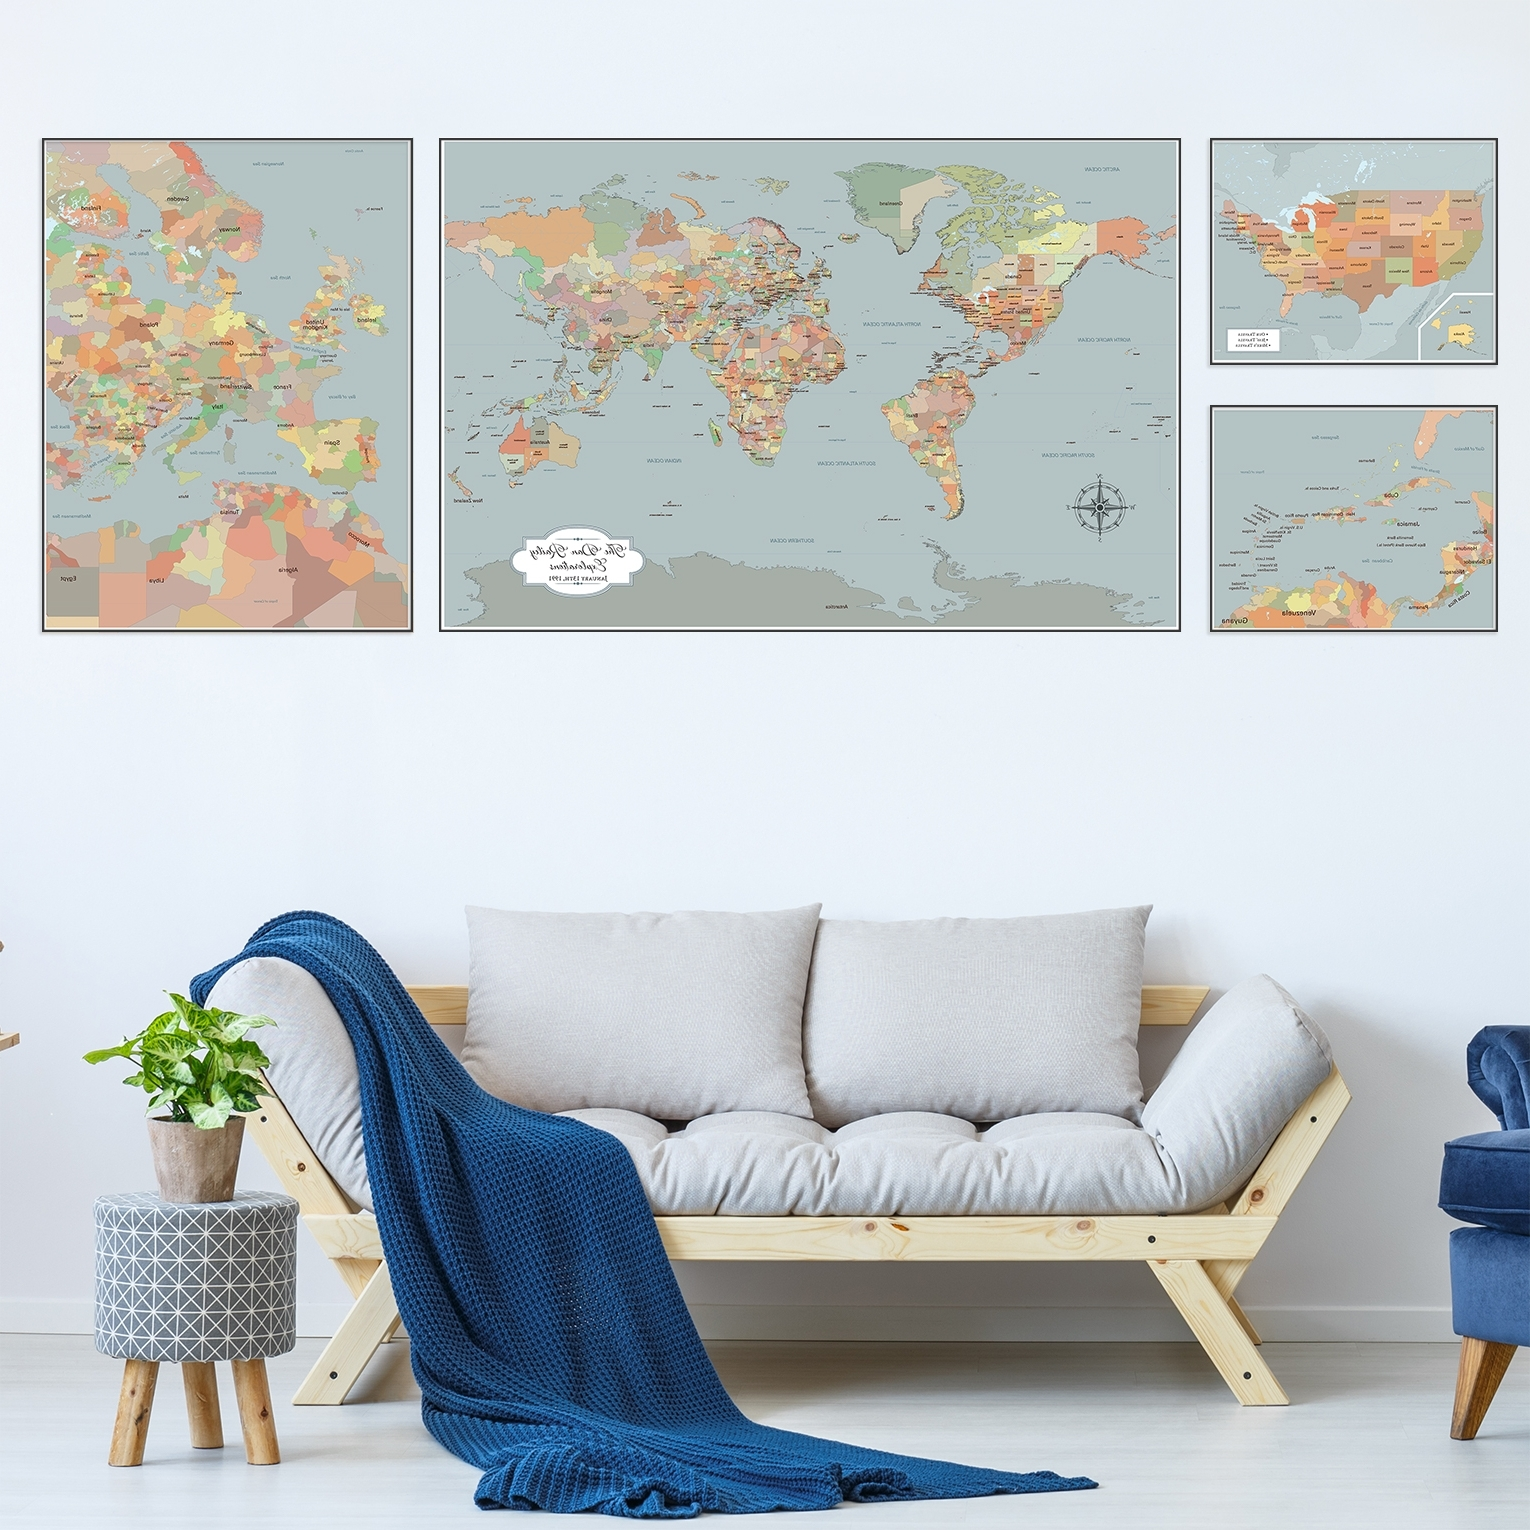 Large Coastal Wall Art Pertaining To Latest Large World Map Wall Art, Set Of 4 Push Pin Maps With Pins, Personalized (View 19 of 20)